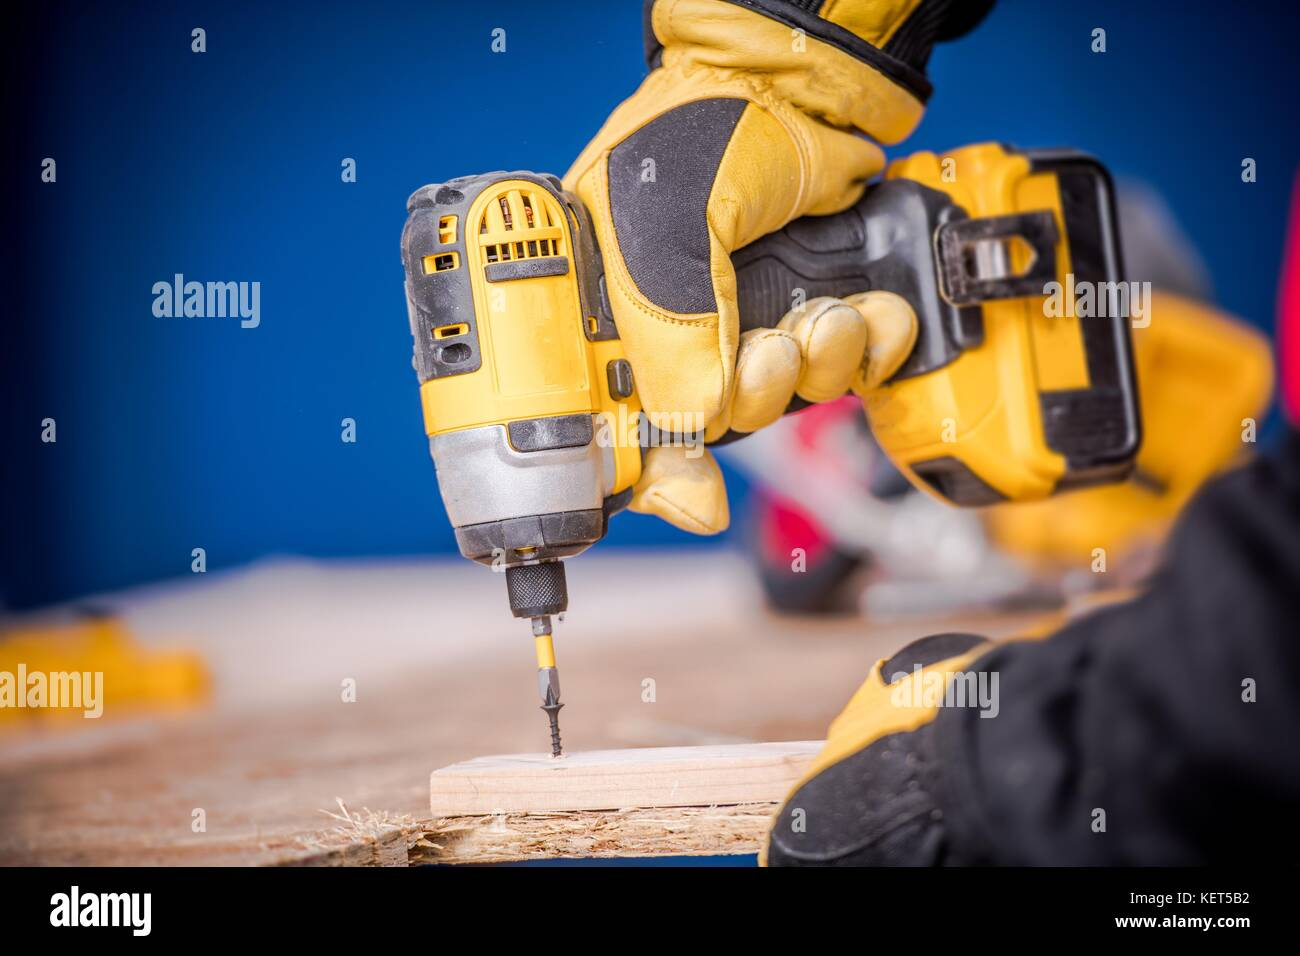 Small Construction Works  Contractor Worker with Cordless Drill